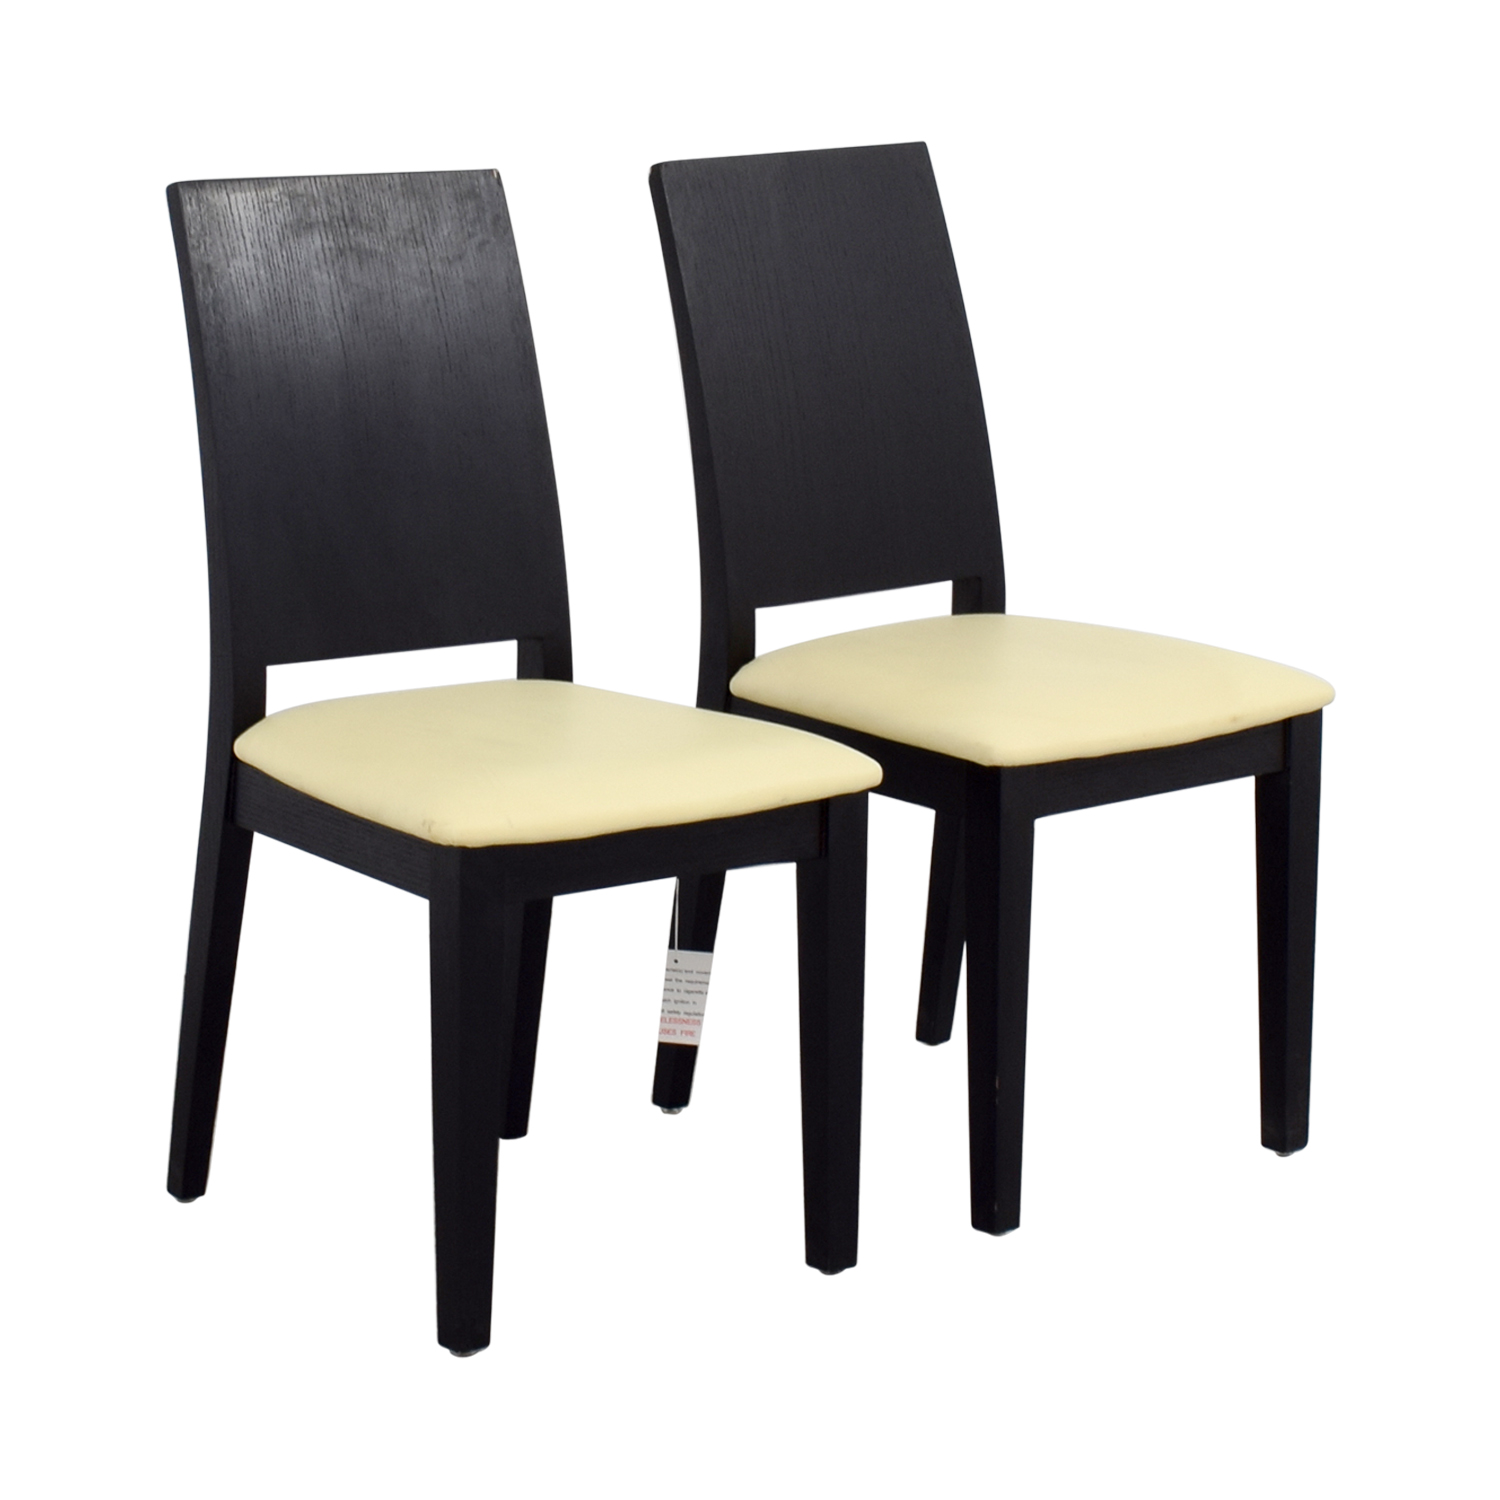 shop Black Frame with White Seat Dining Chairs Chairs